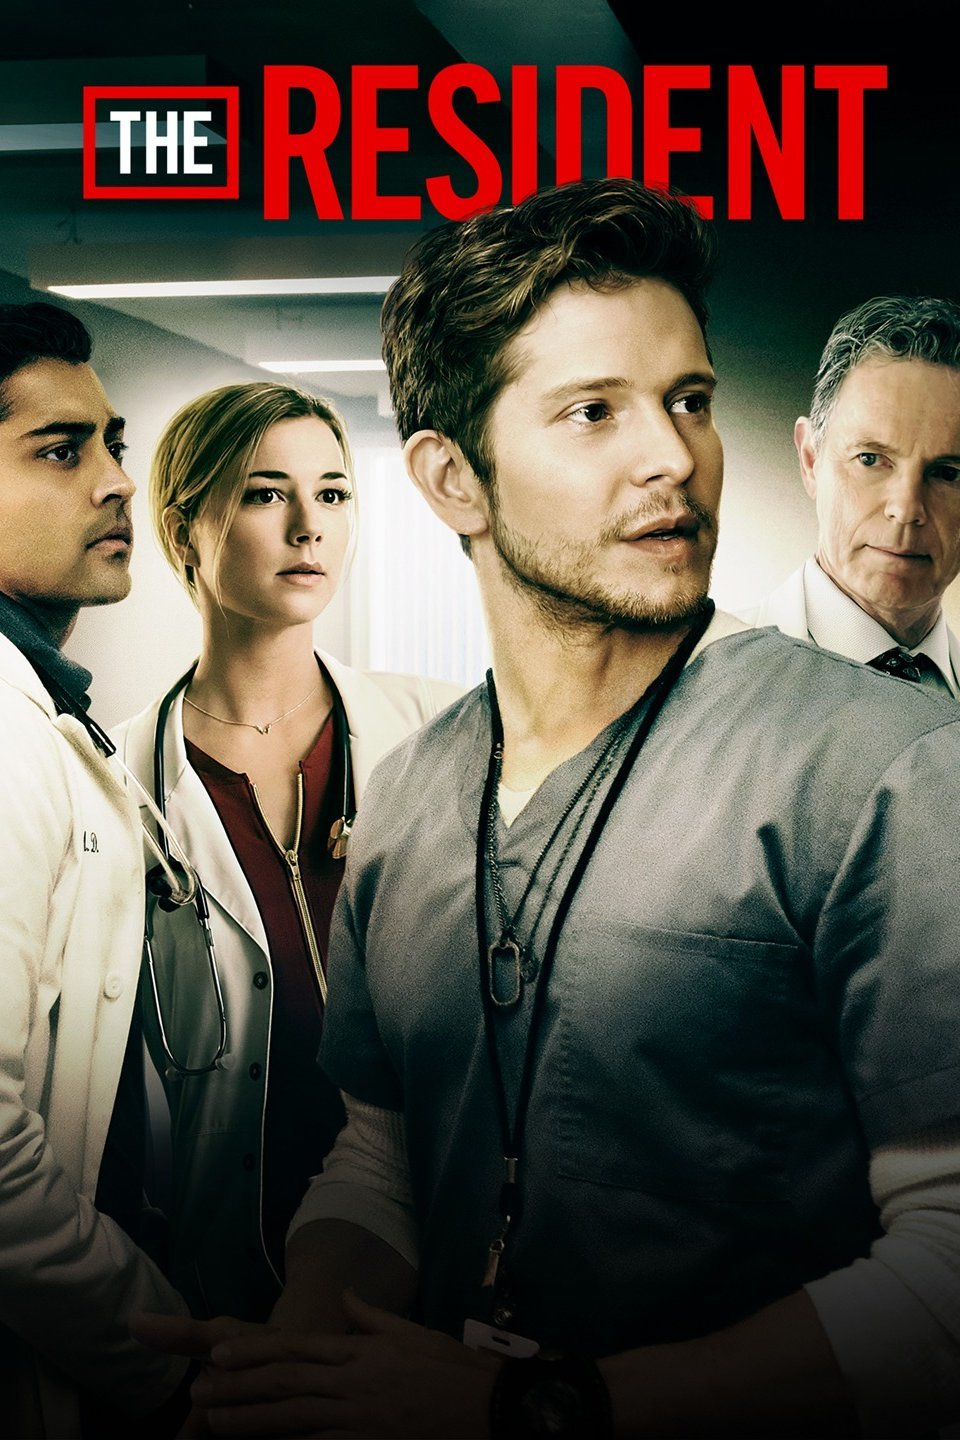 The Resident 2018: Season 1 - Full (1/11)